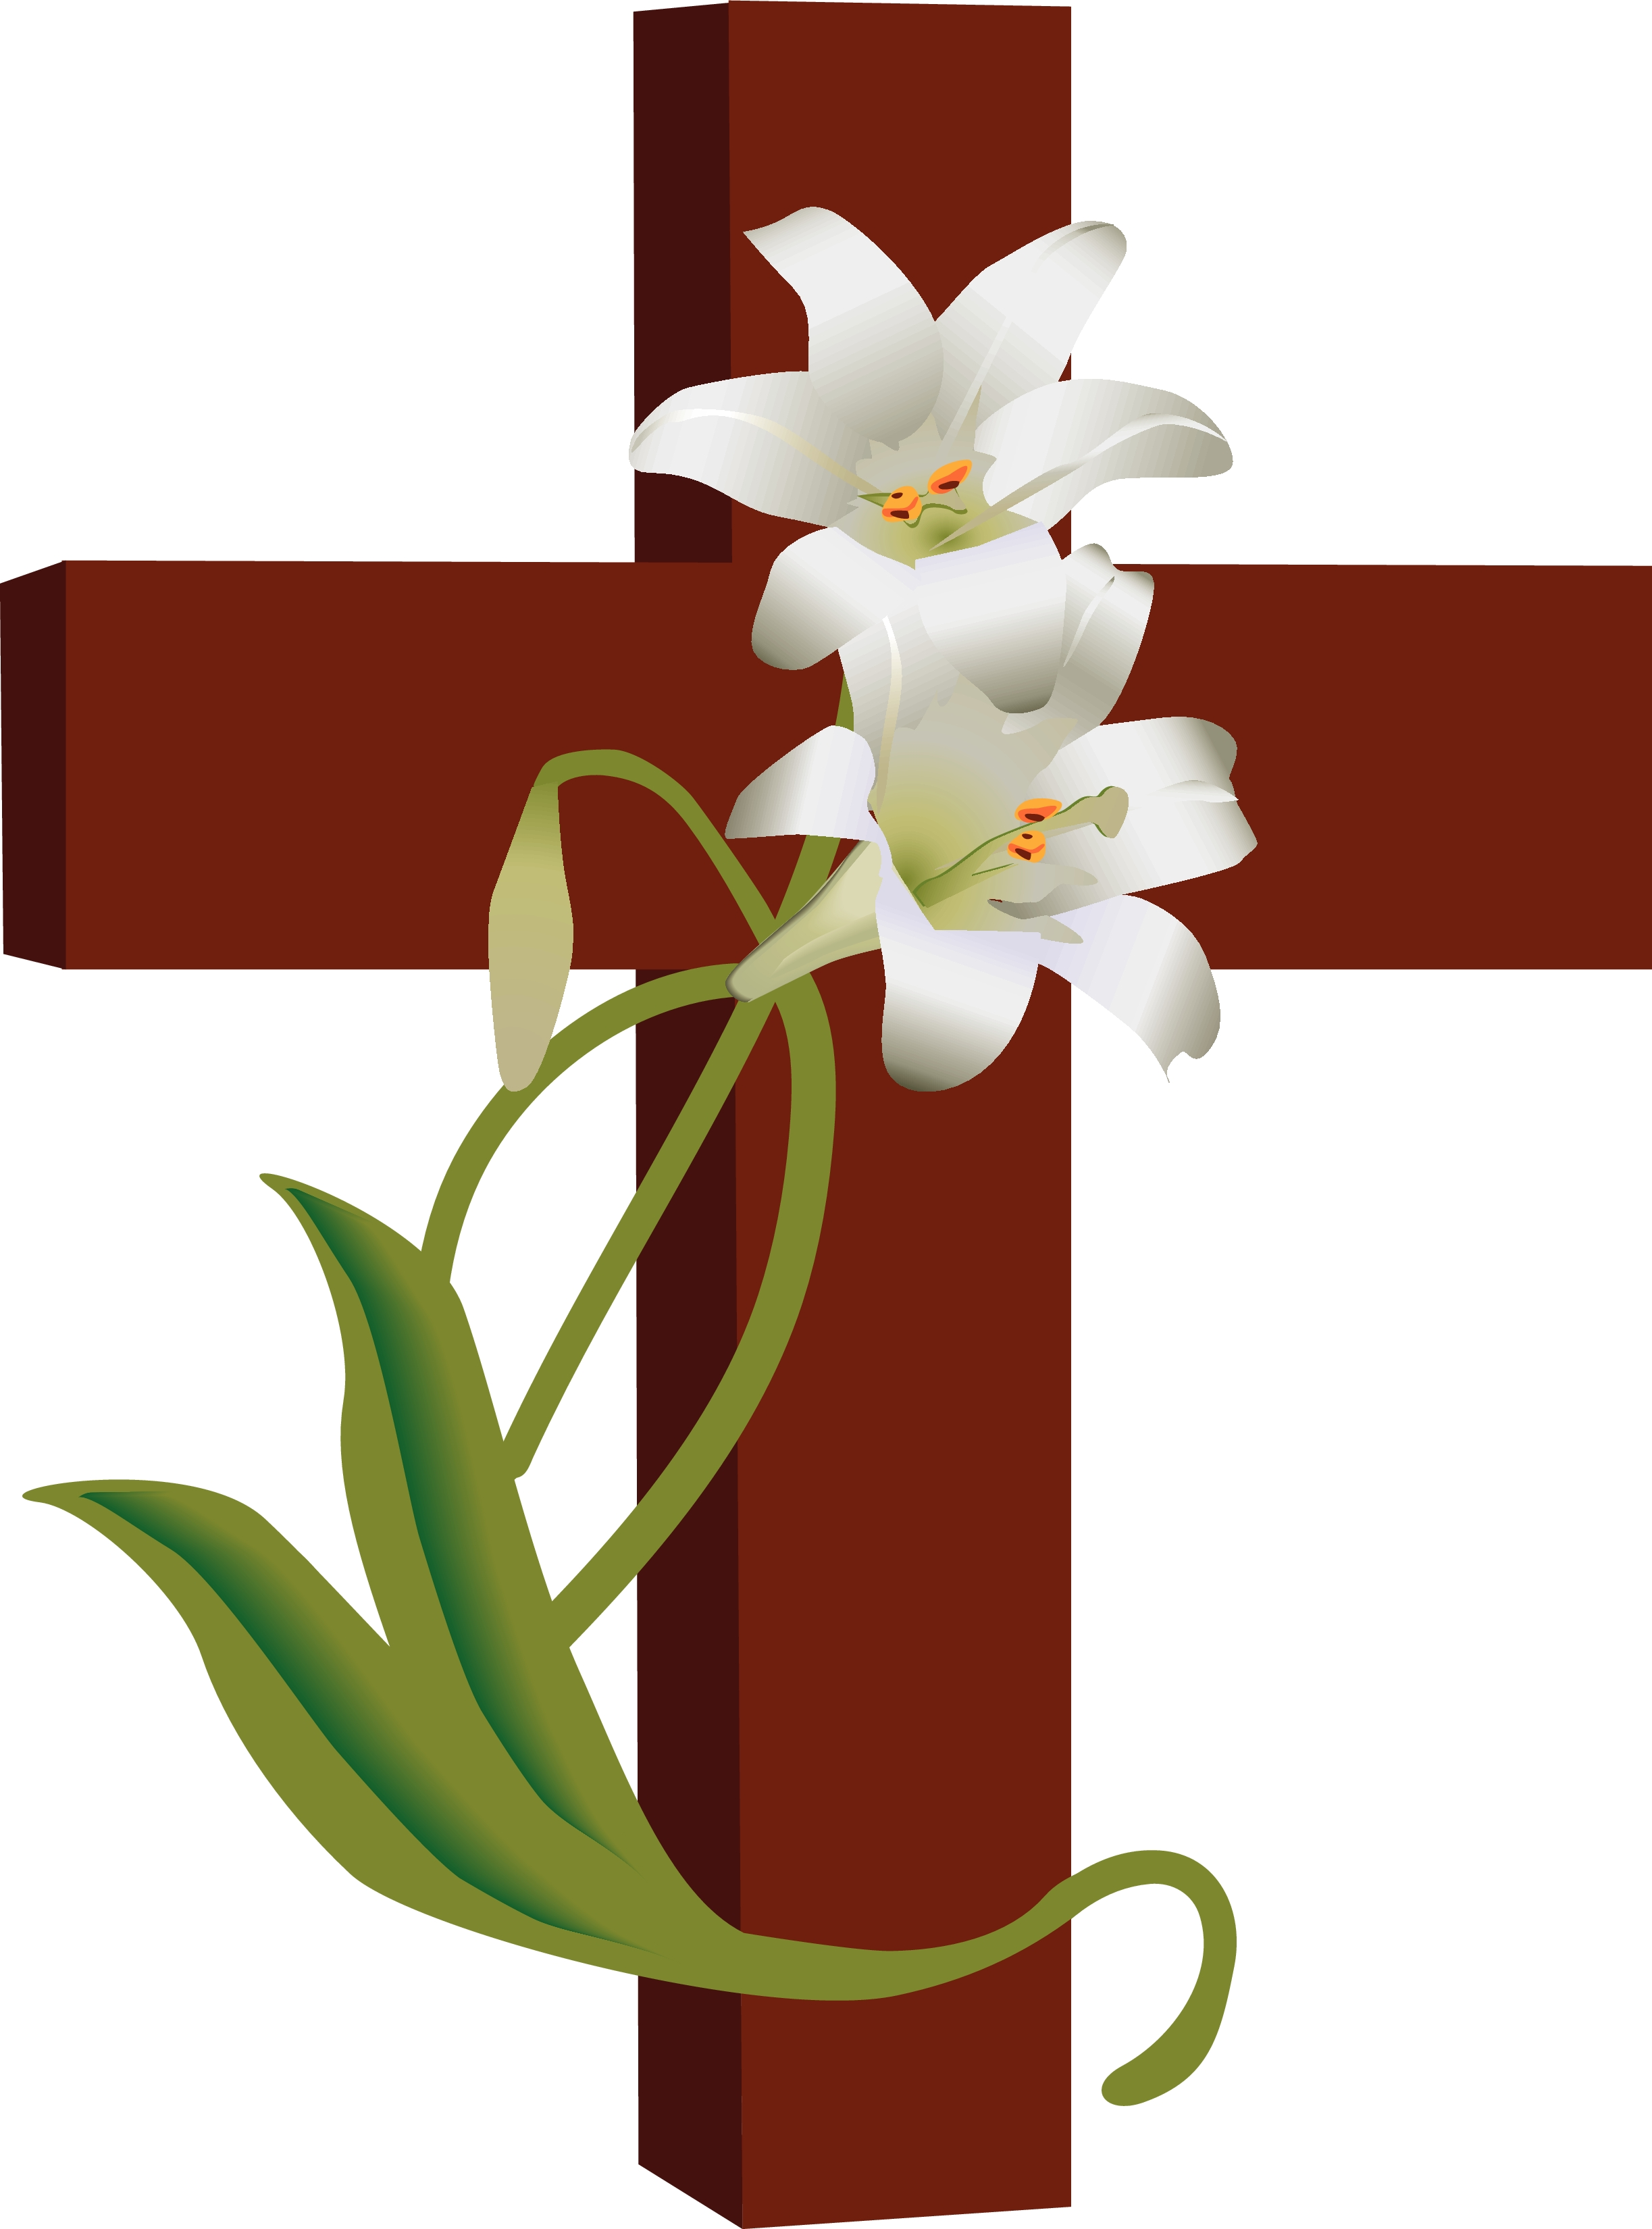 Christian Burial Symbols Clipart.